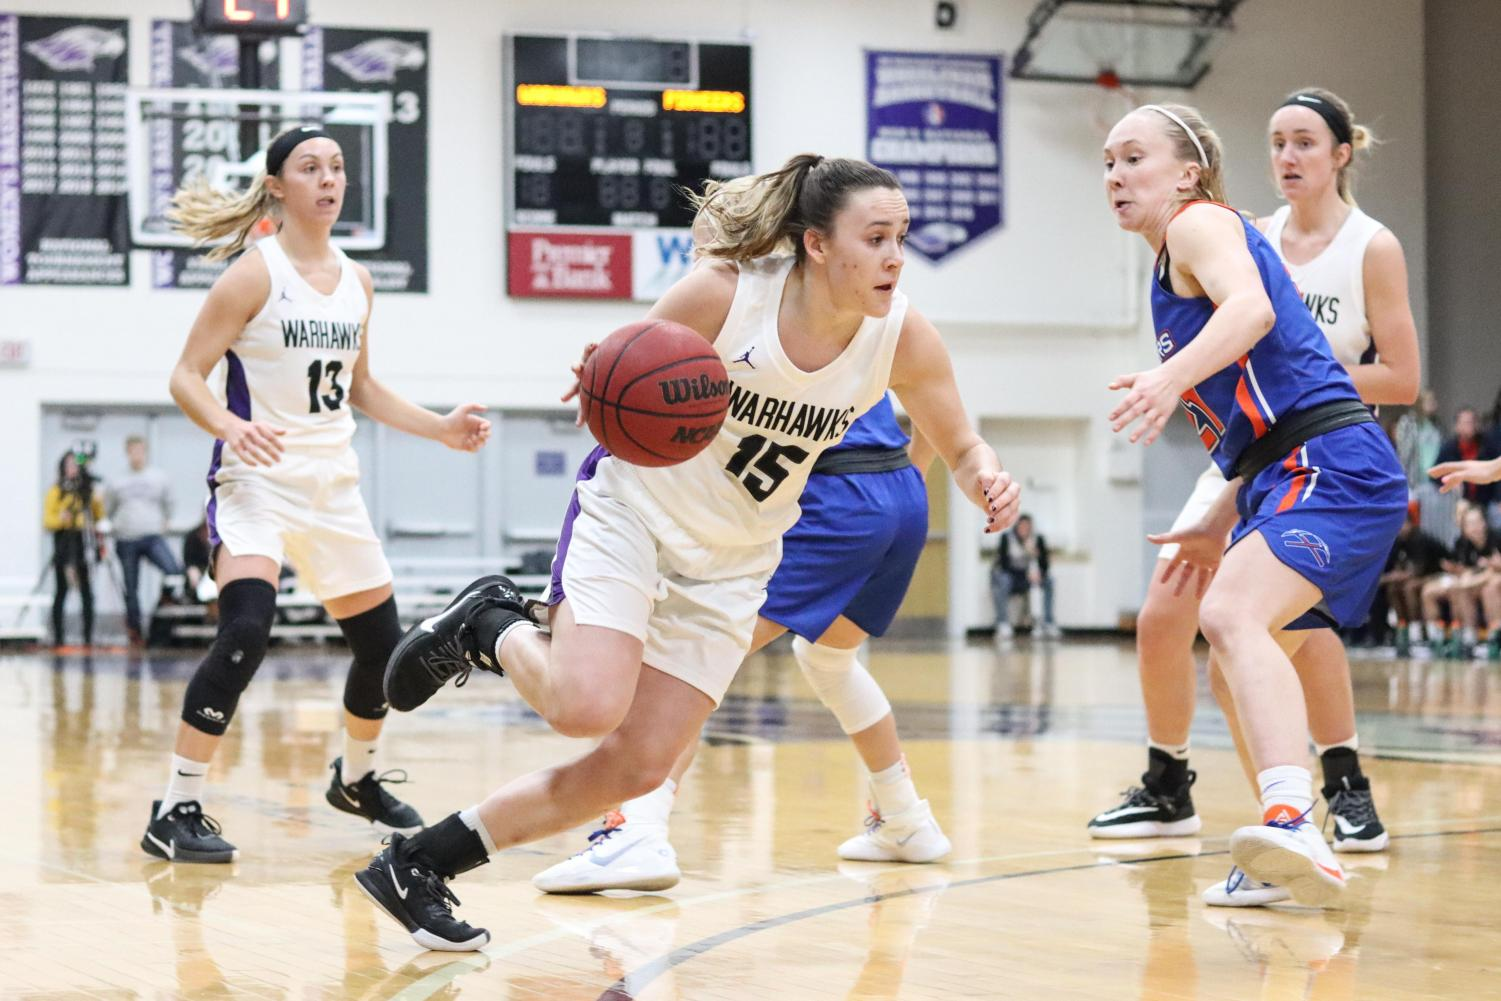 Sophomore Veronica Kieres (15) drives to the hoop off a screen by senior Becky Raeder (13) in the game against Platteville.